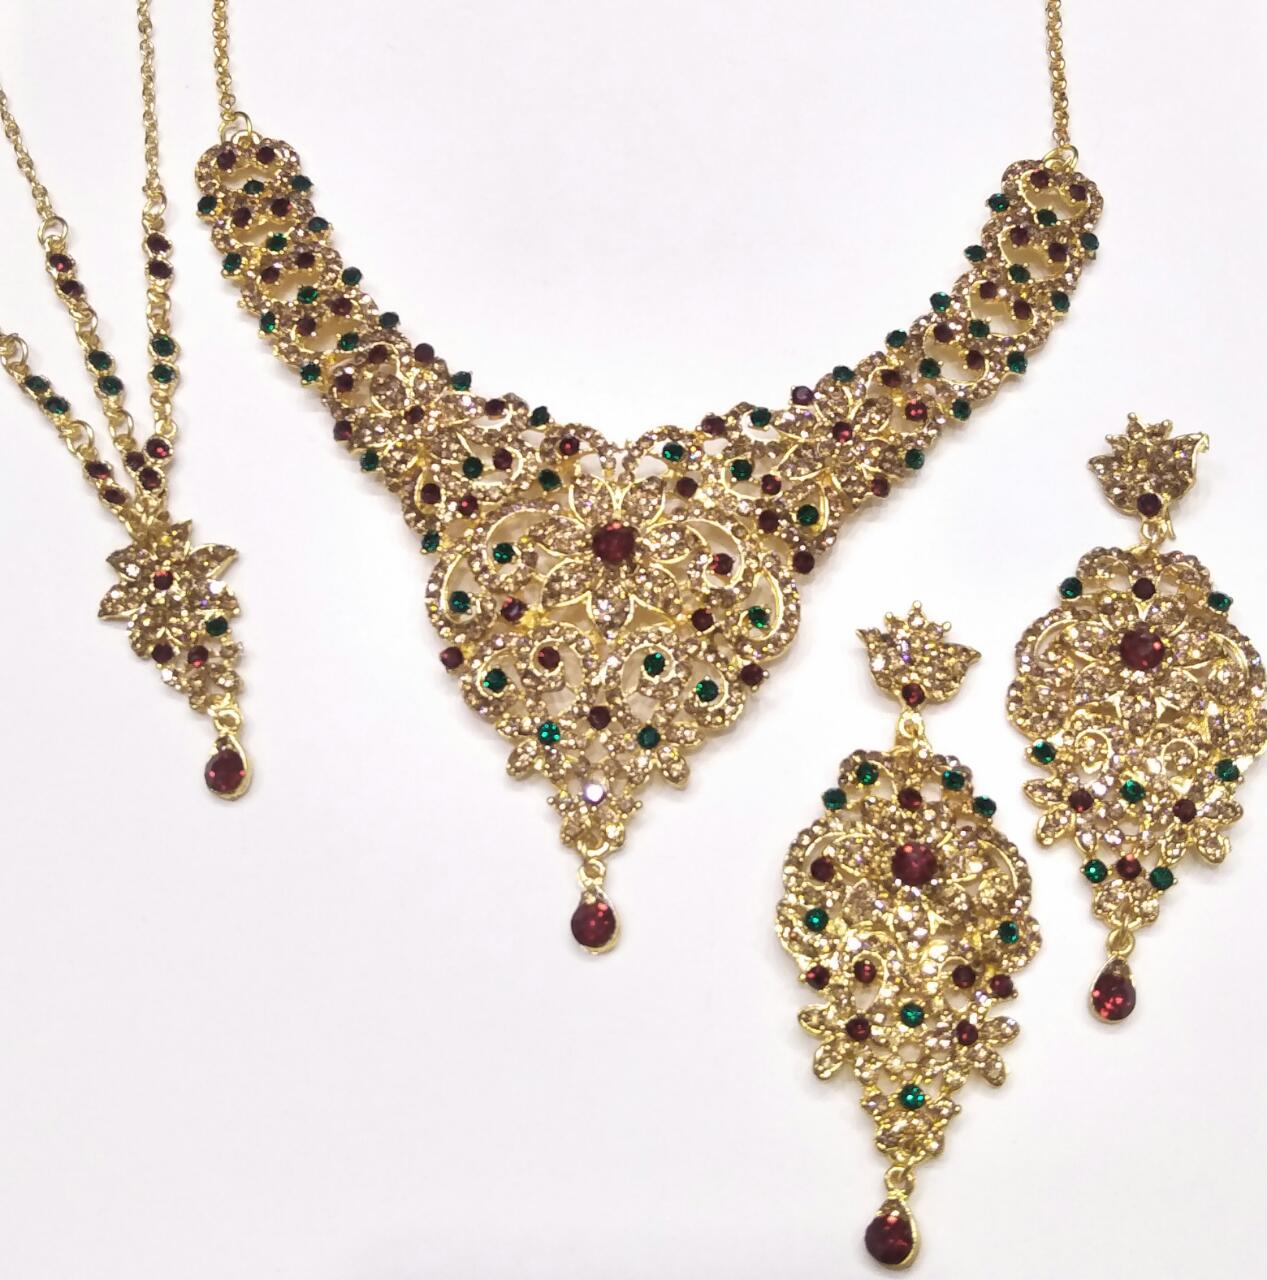 Antique Lead Jewelry Set with Pearls for Women